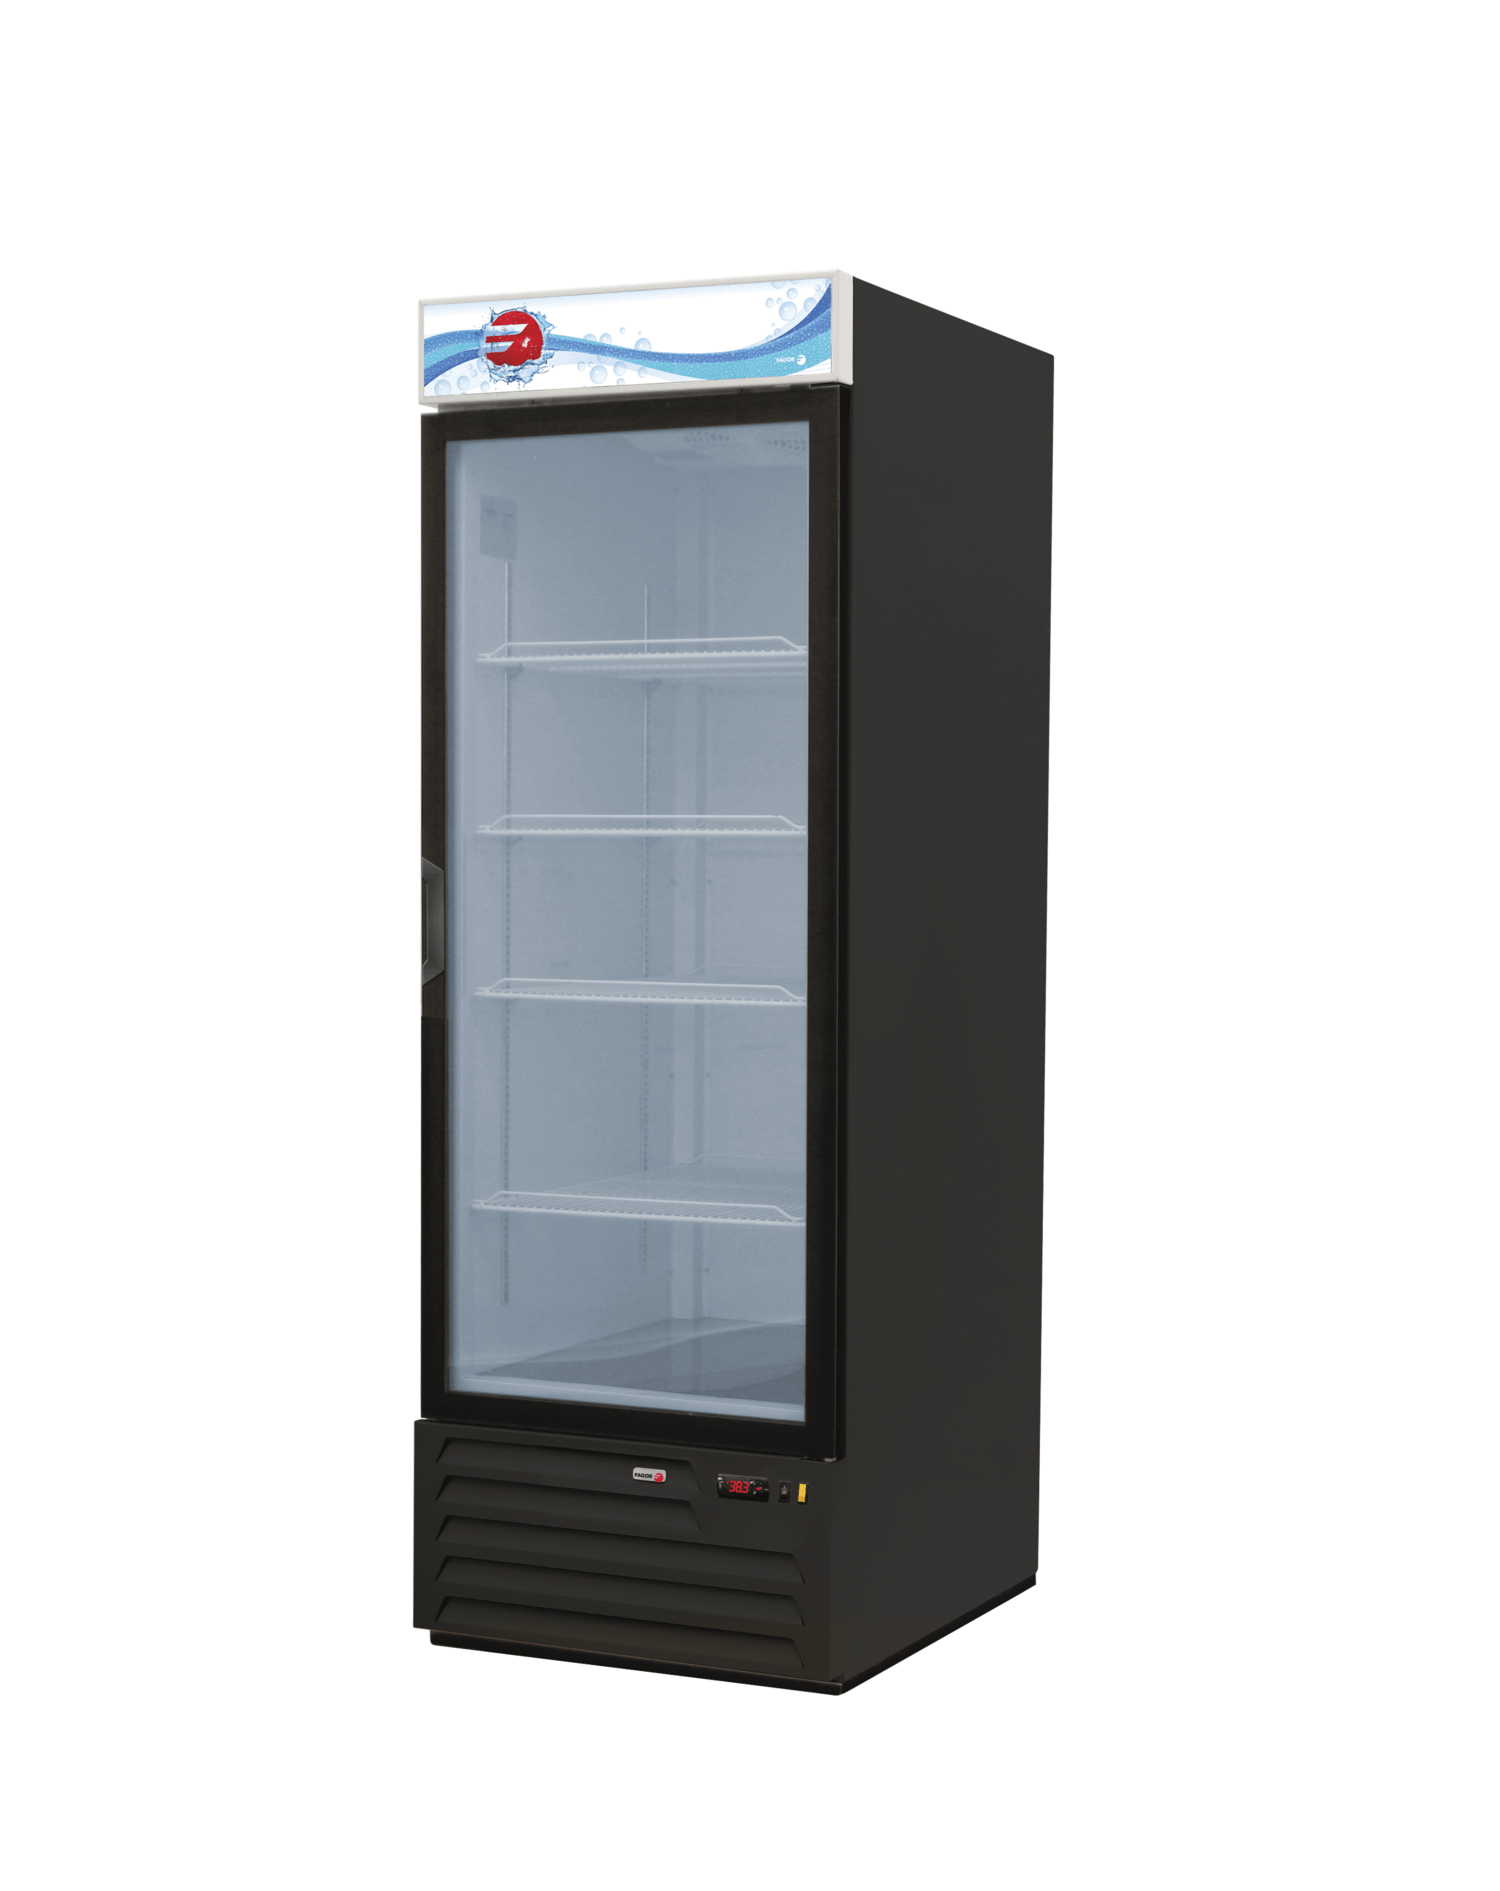 Single Glass Door Refrigerator Fagor 23 Cu. Ft FMD 23   Sold By Easy